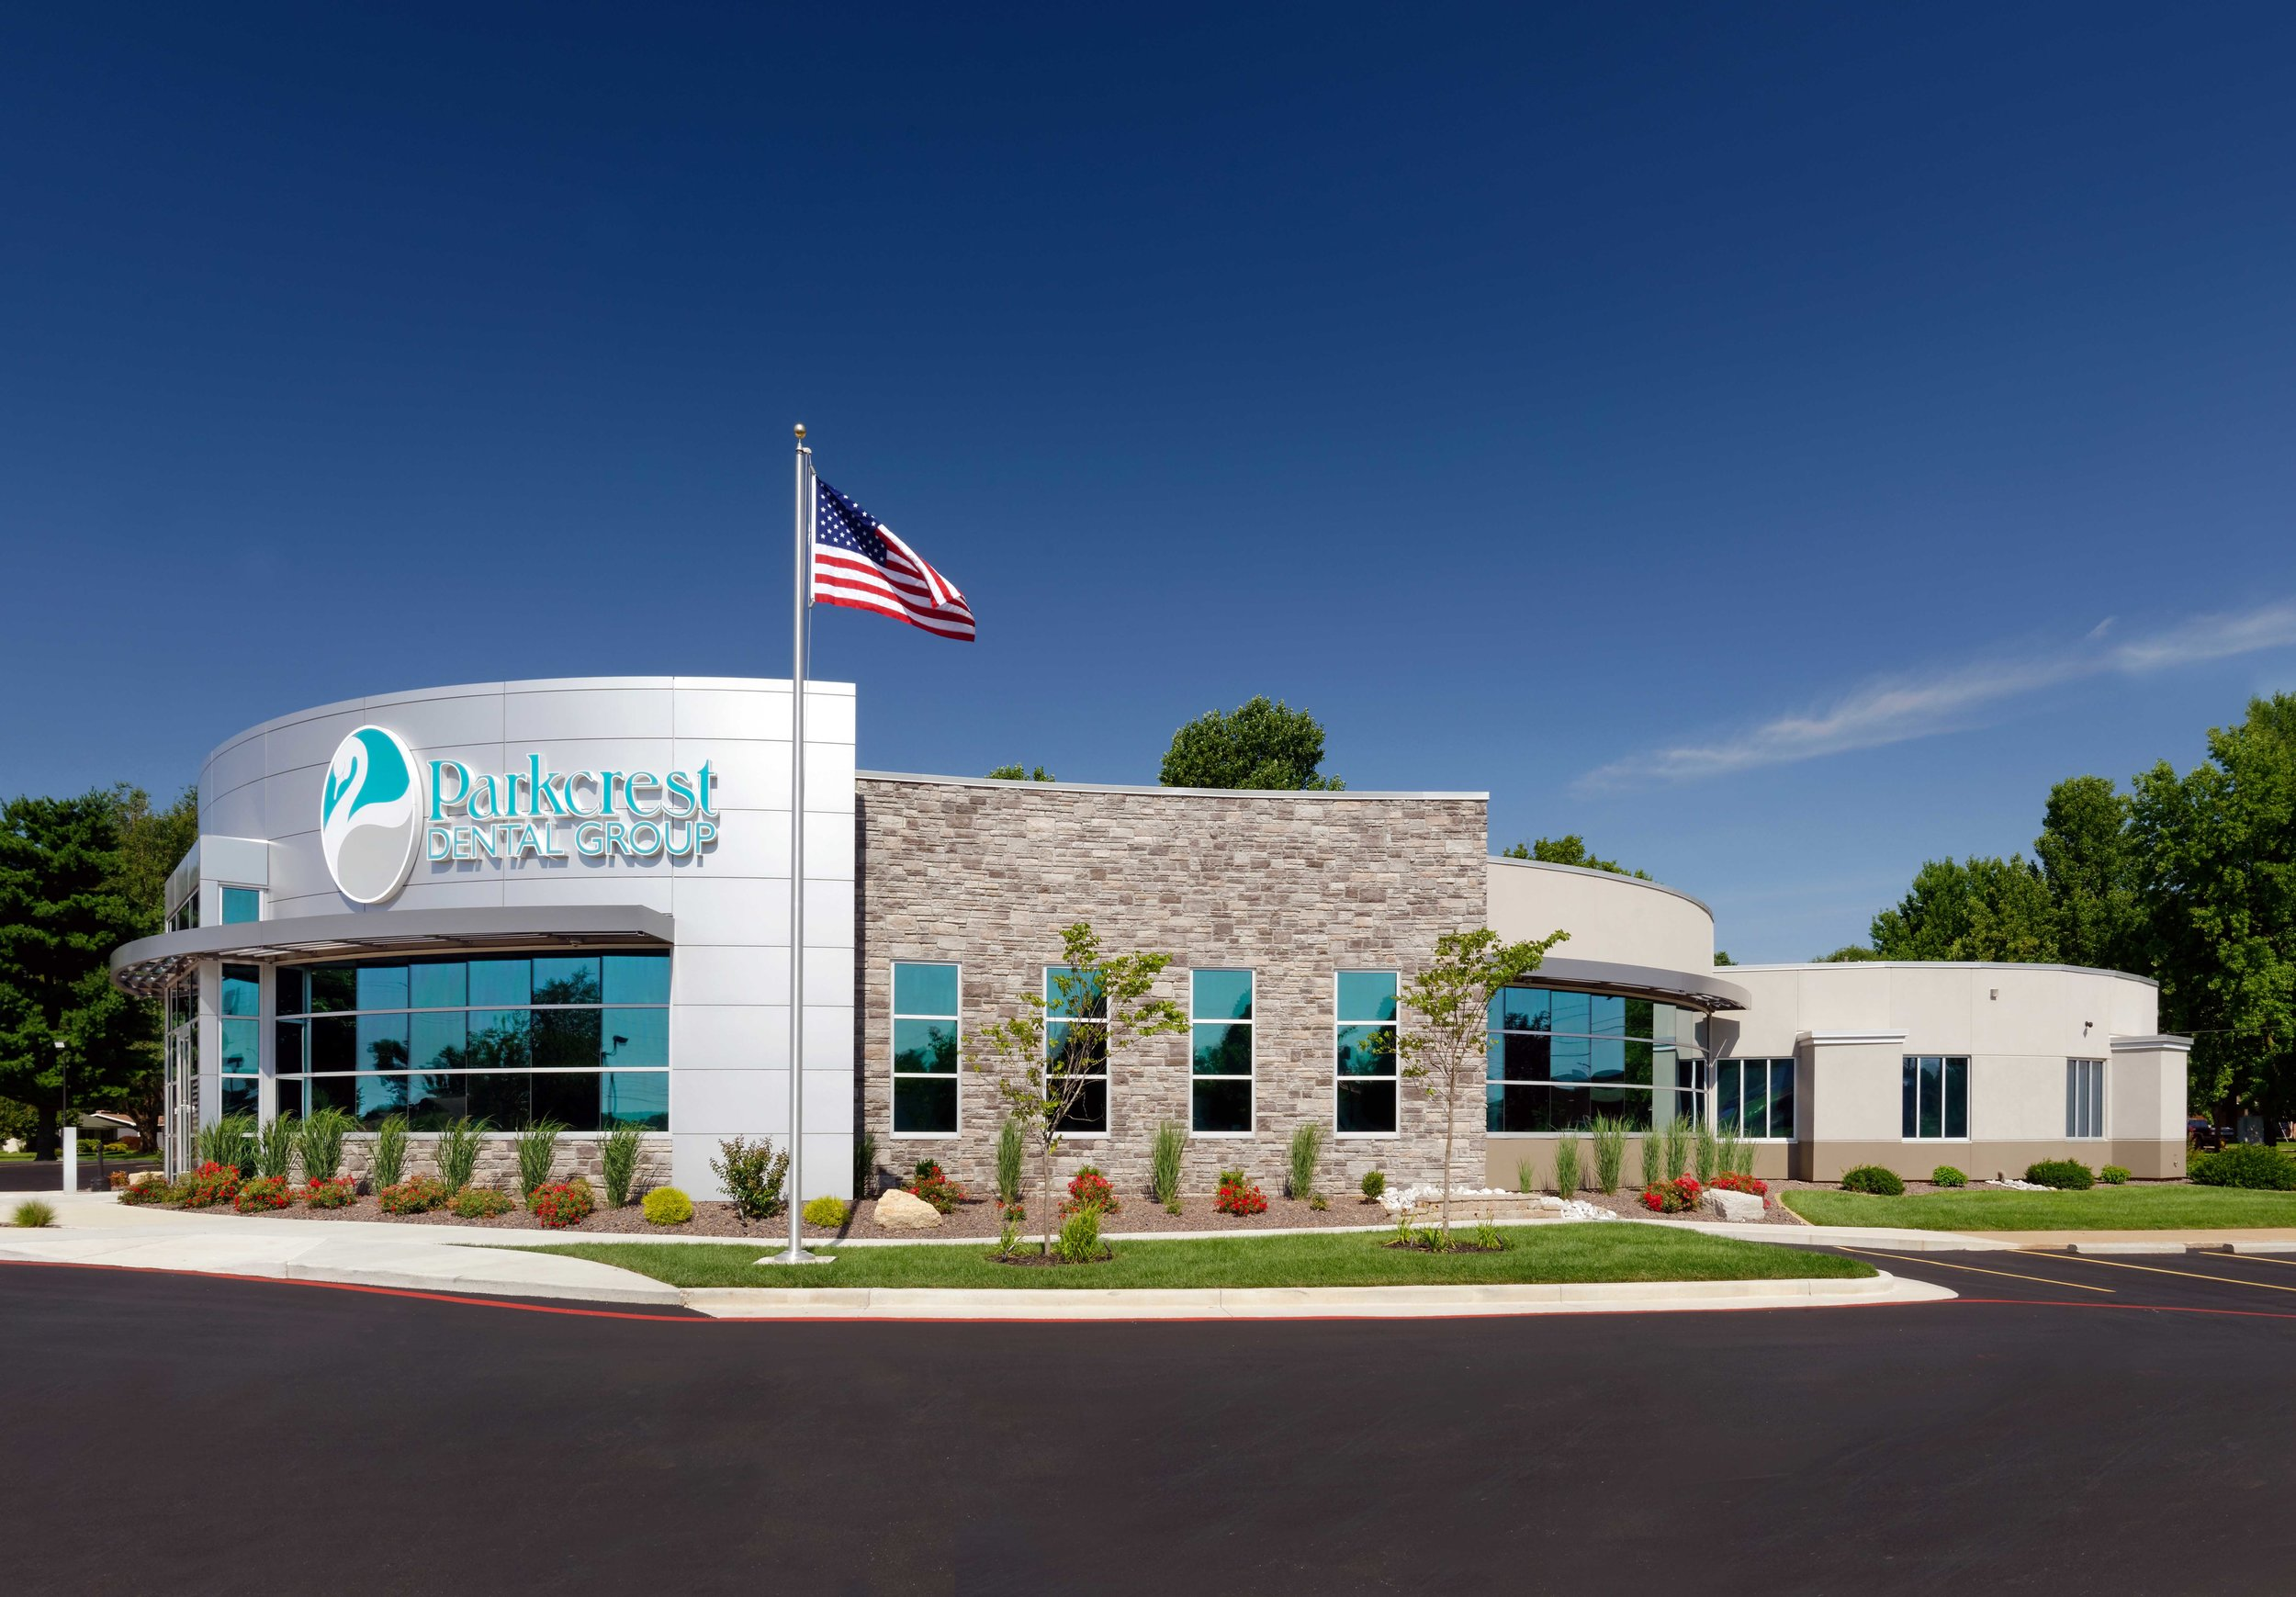 PARKCREST DENTAL GROUP